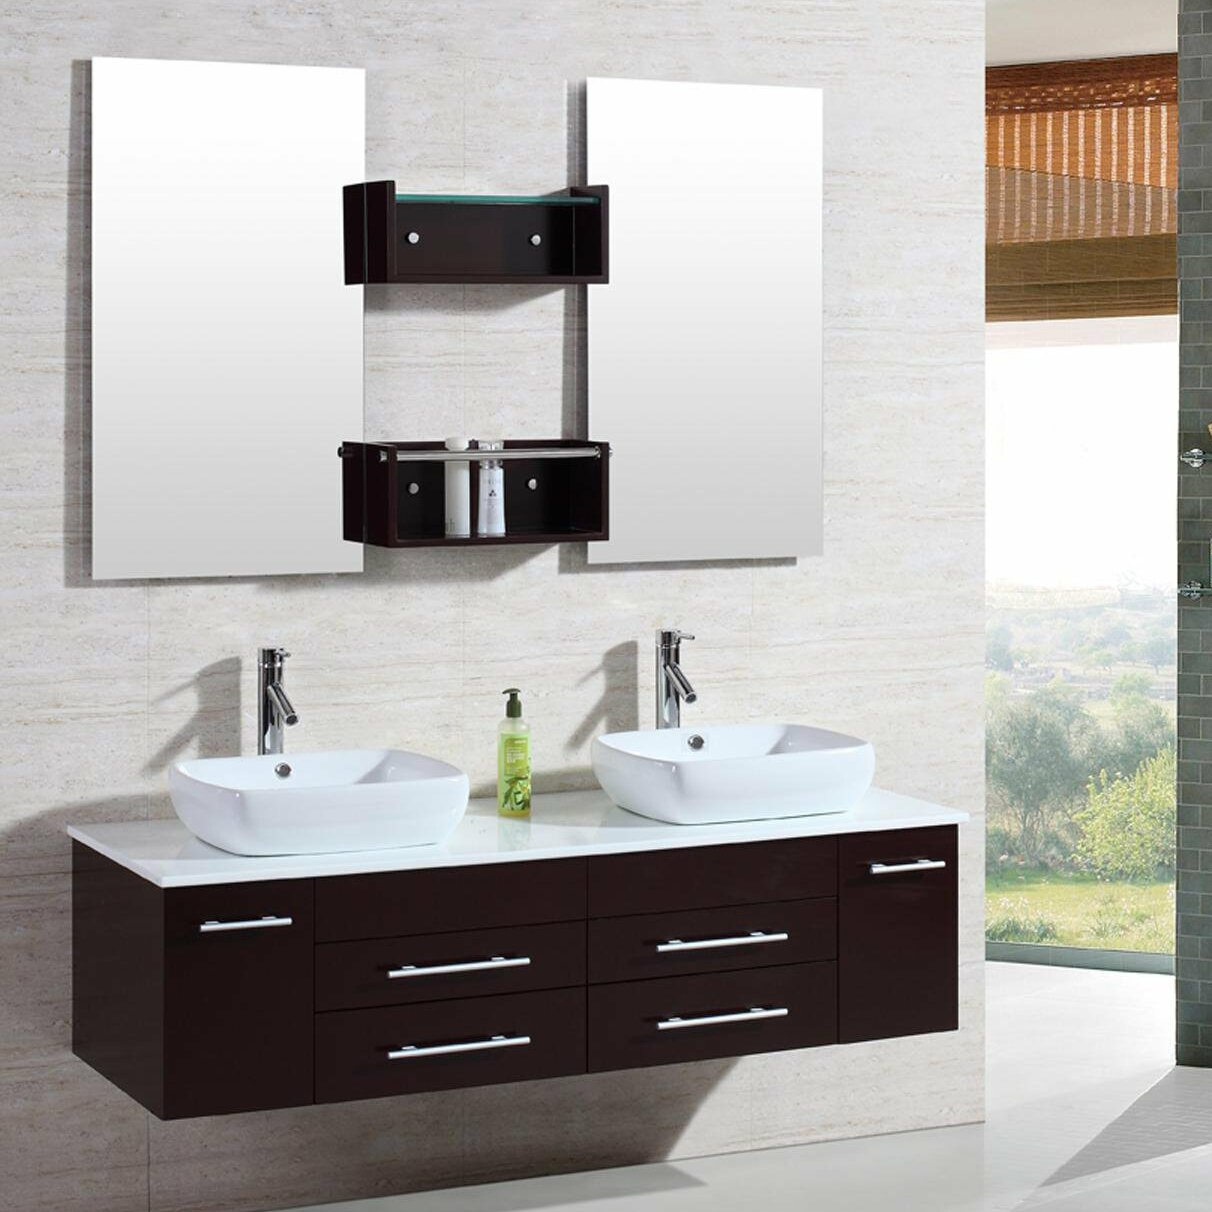 kokols 60 double floating bathroom vanity set with mirror